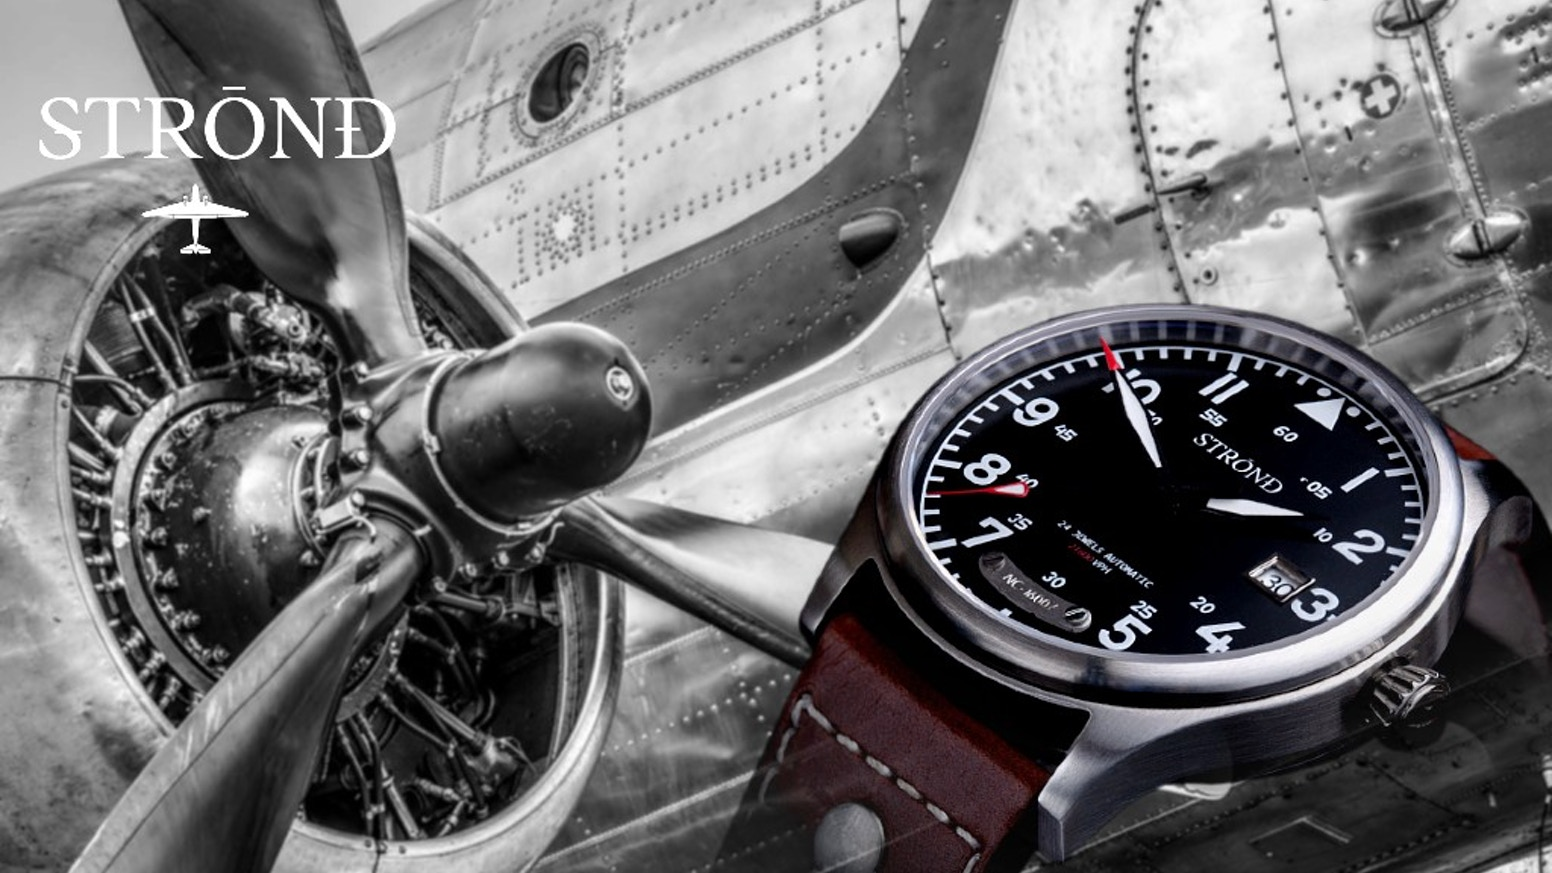 Classic 1930's inspired automatic Pilots watch, British Designed, with 1930's DC-3 airplane parts incorporated  !